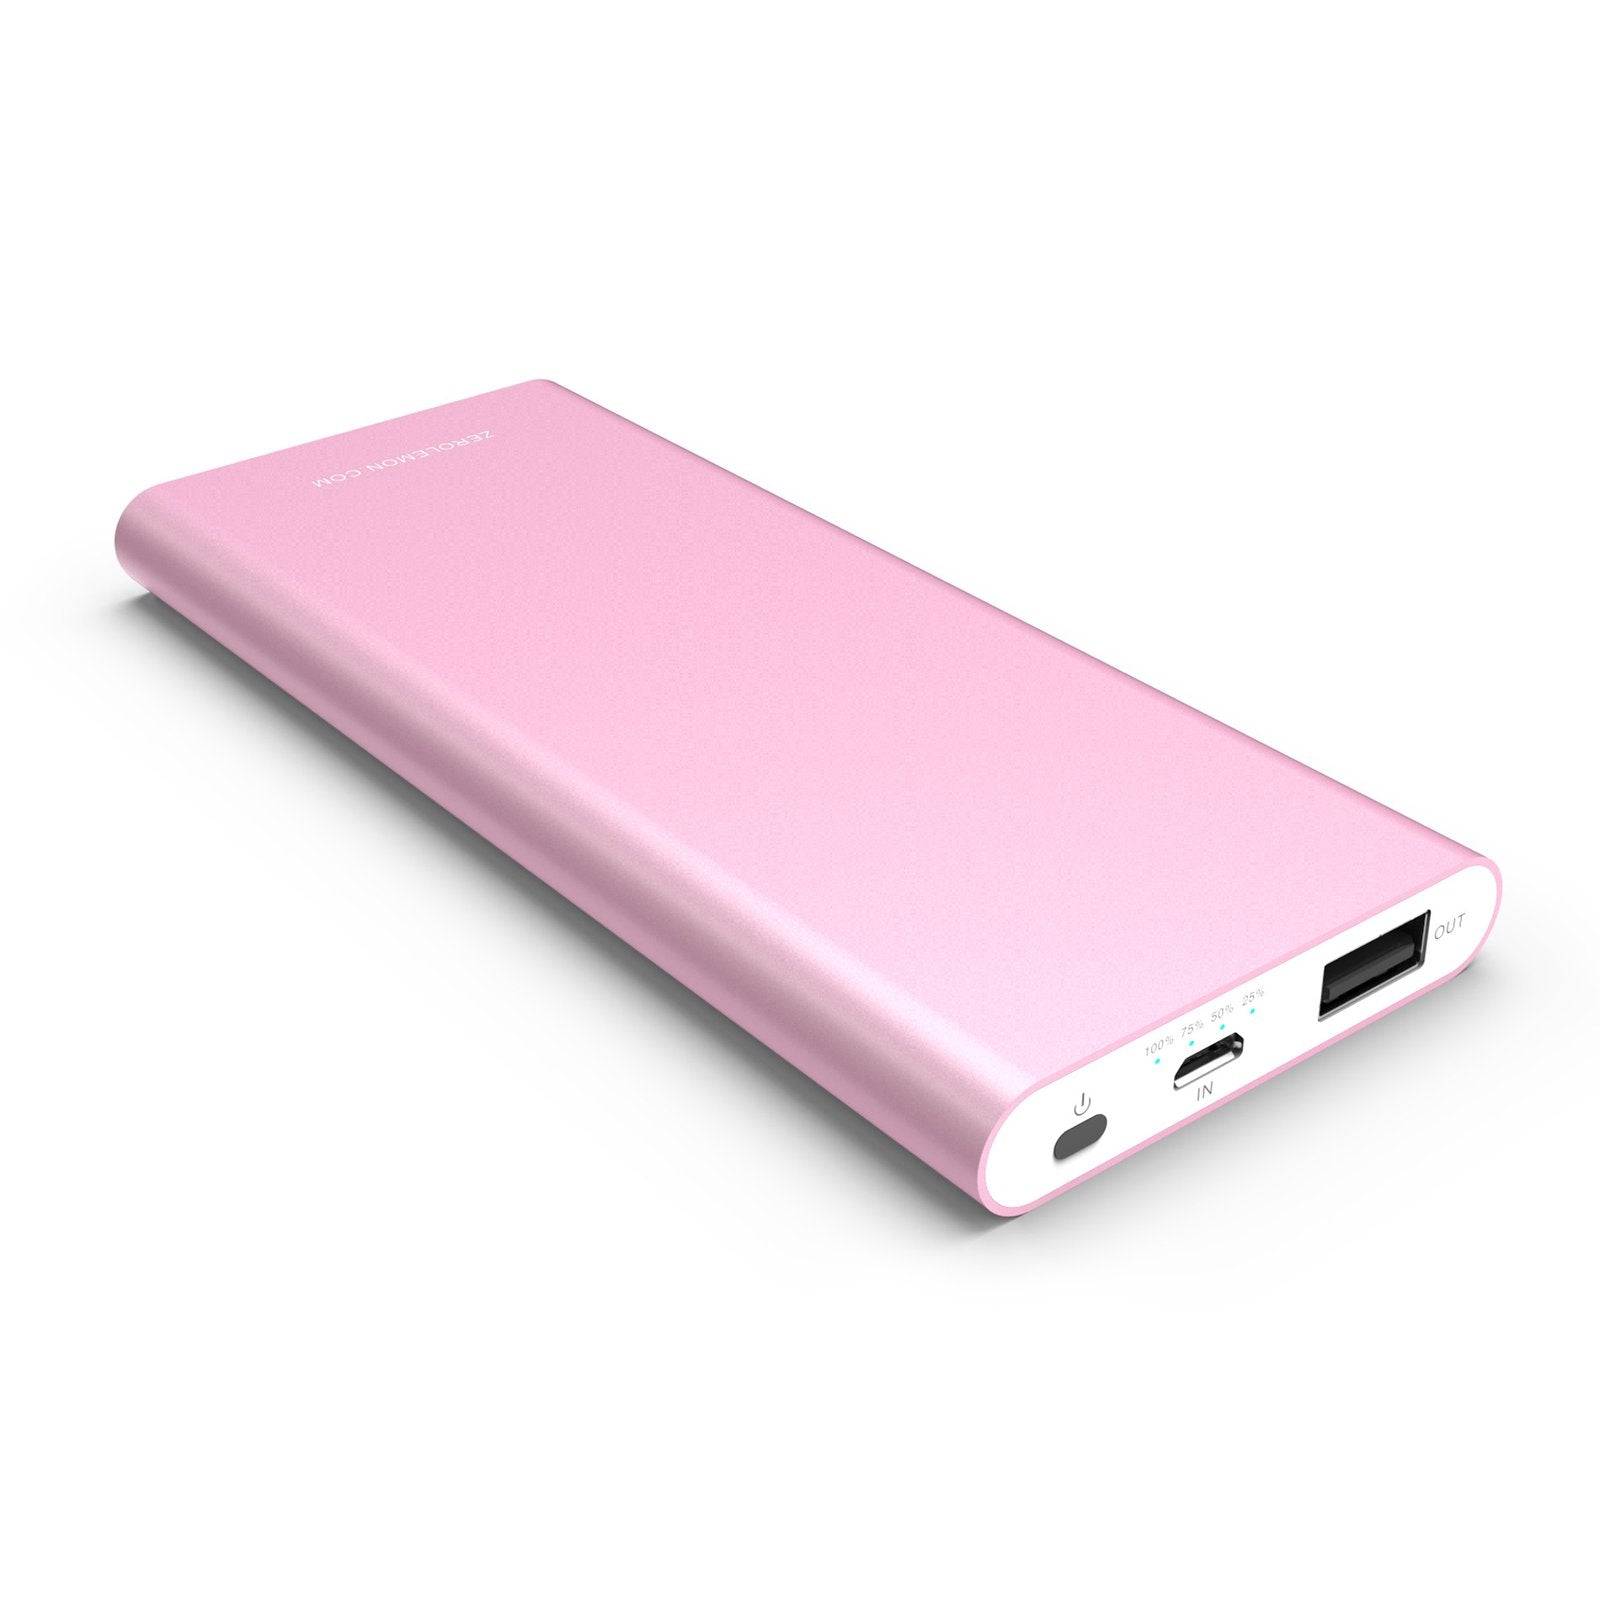 JuiceStick Portable Charger 9000mAh [Shipping to US Only]